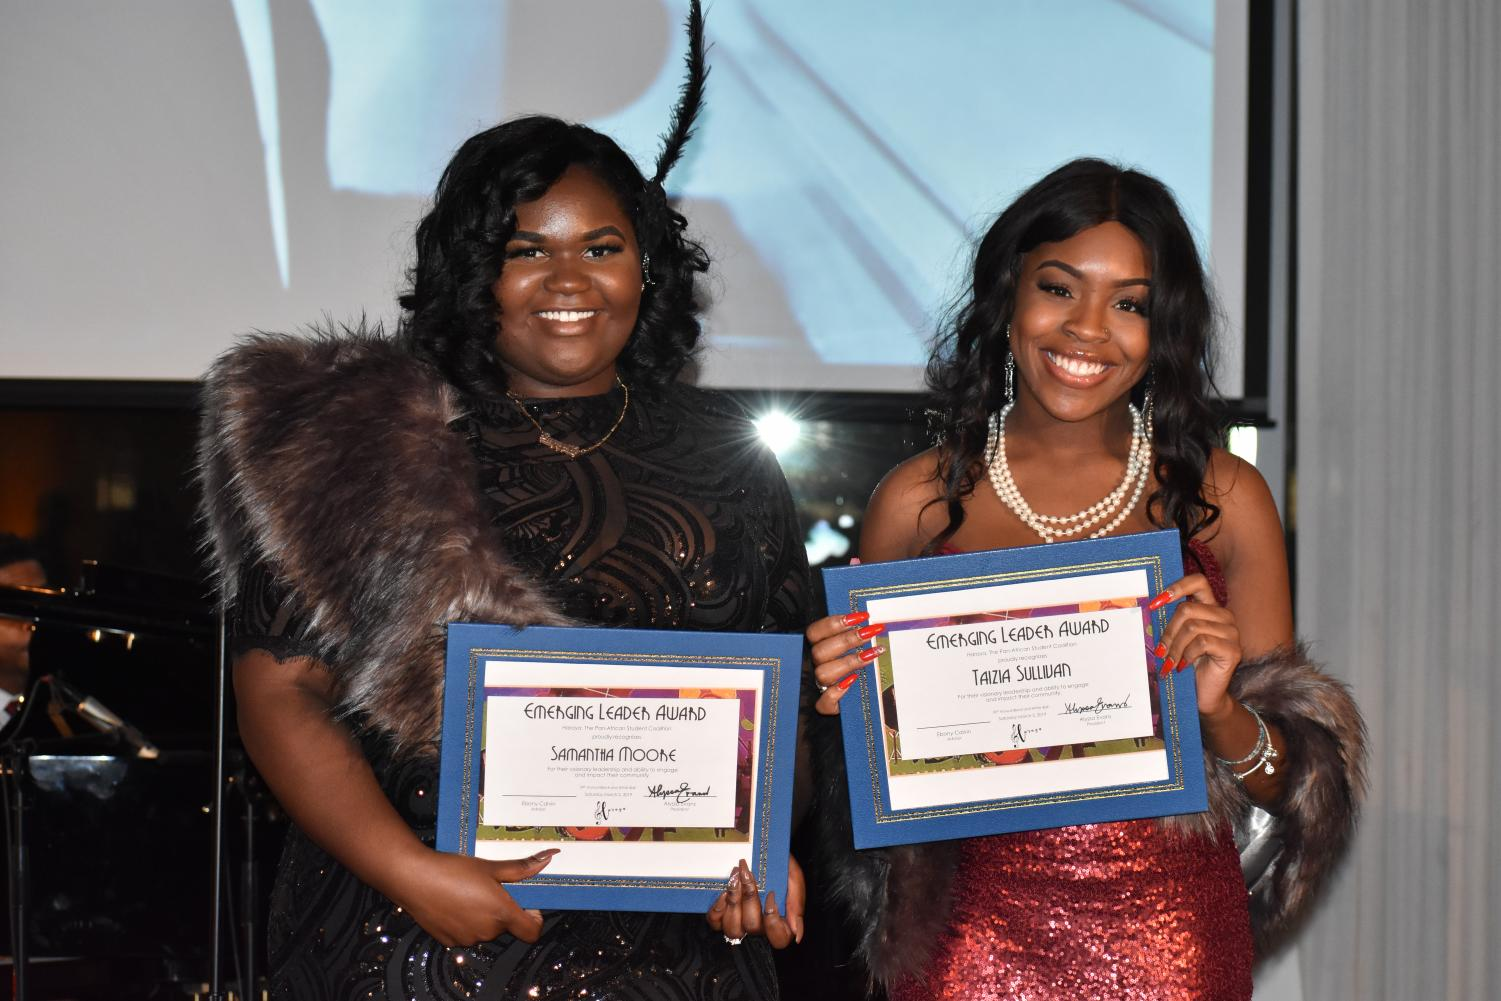 Savannah Moore and Taizia Sullivan were given the Emerging Leader Award at Haraya's B&W Ball.